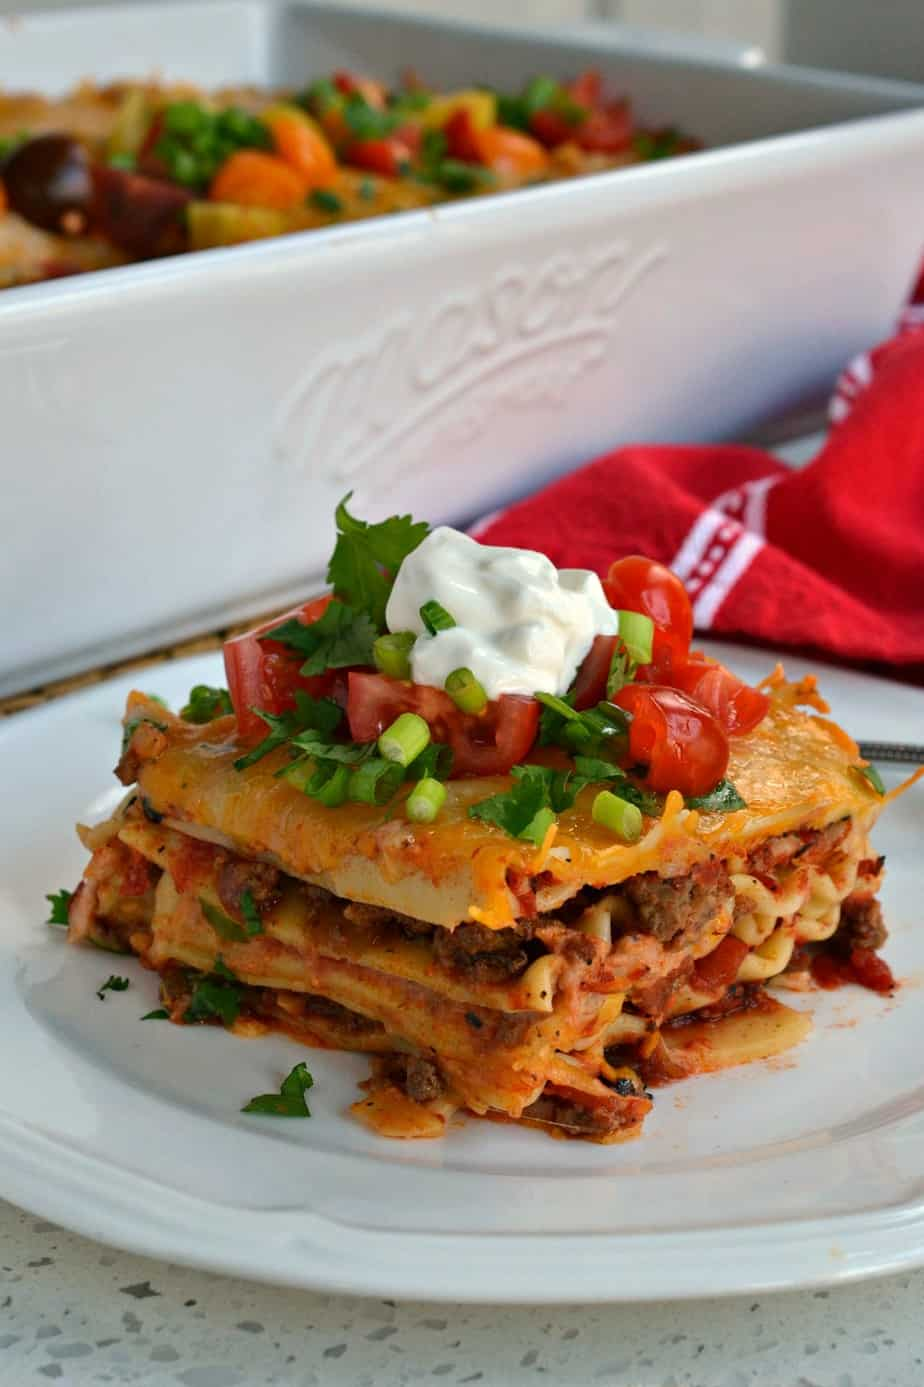 From the onions, garlic and seasoned beef to the layers of melted Mexican cheese this recipe is bursting with flavor.